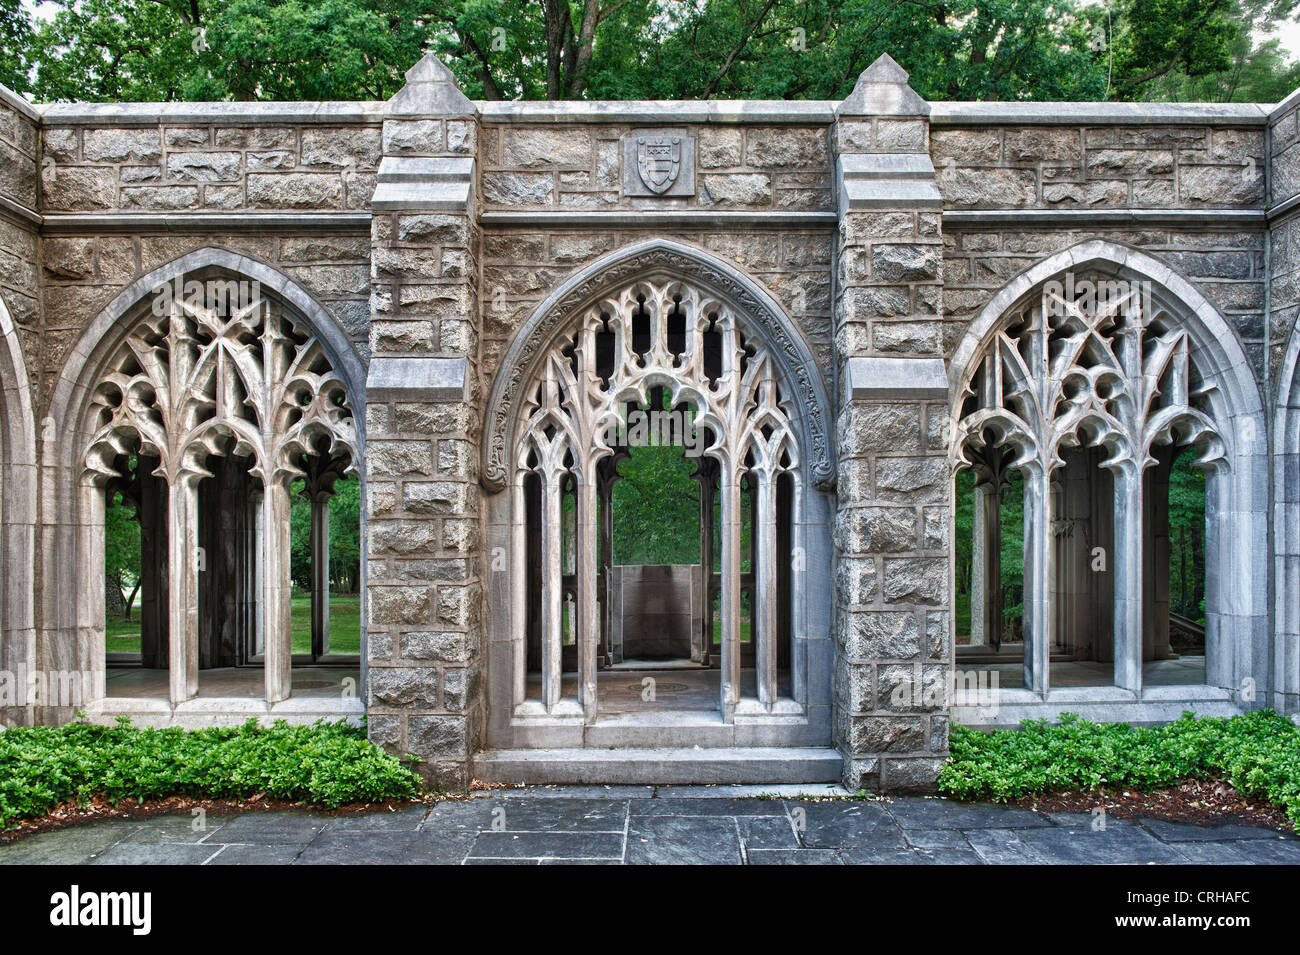 Washington Memorial Chapel, Vally Forge, Pennsylvania, USA - Stock Image